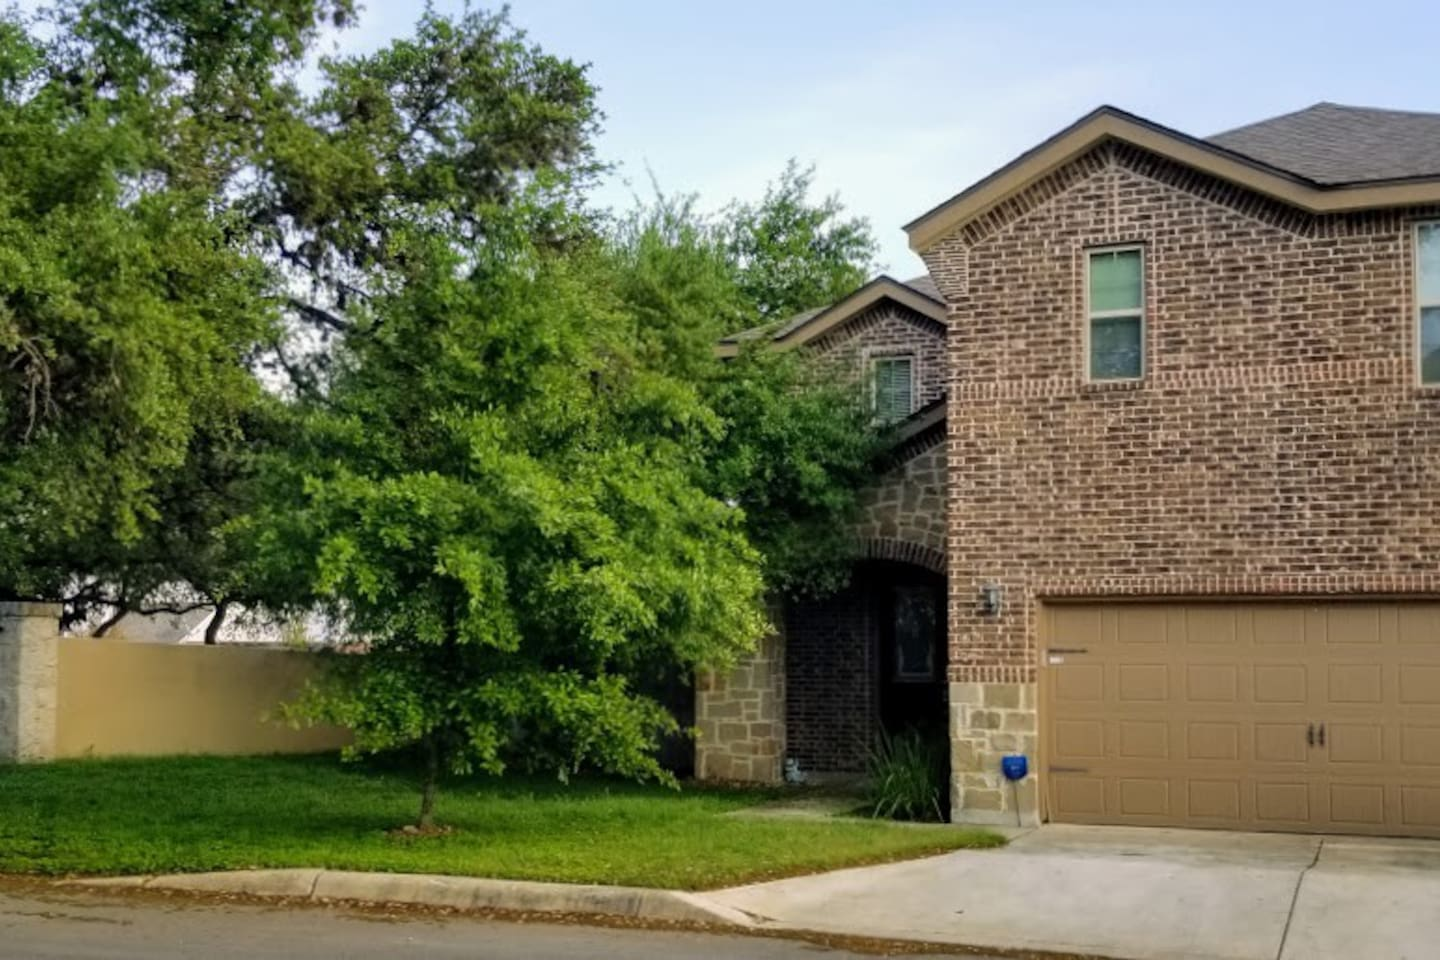 3 bedrooms with 2.5 bathrooms. Park in the driveway. Gated community.